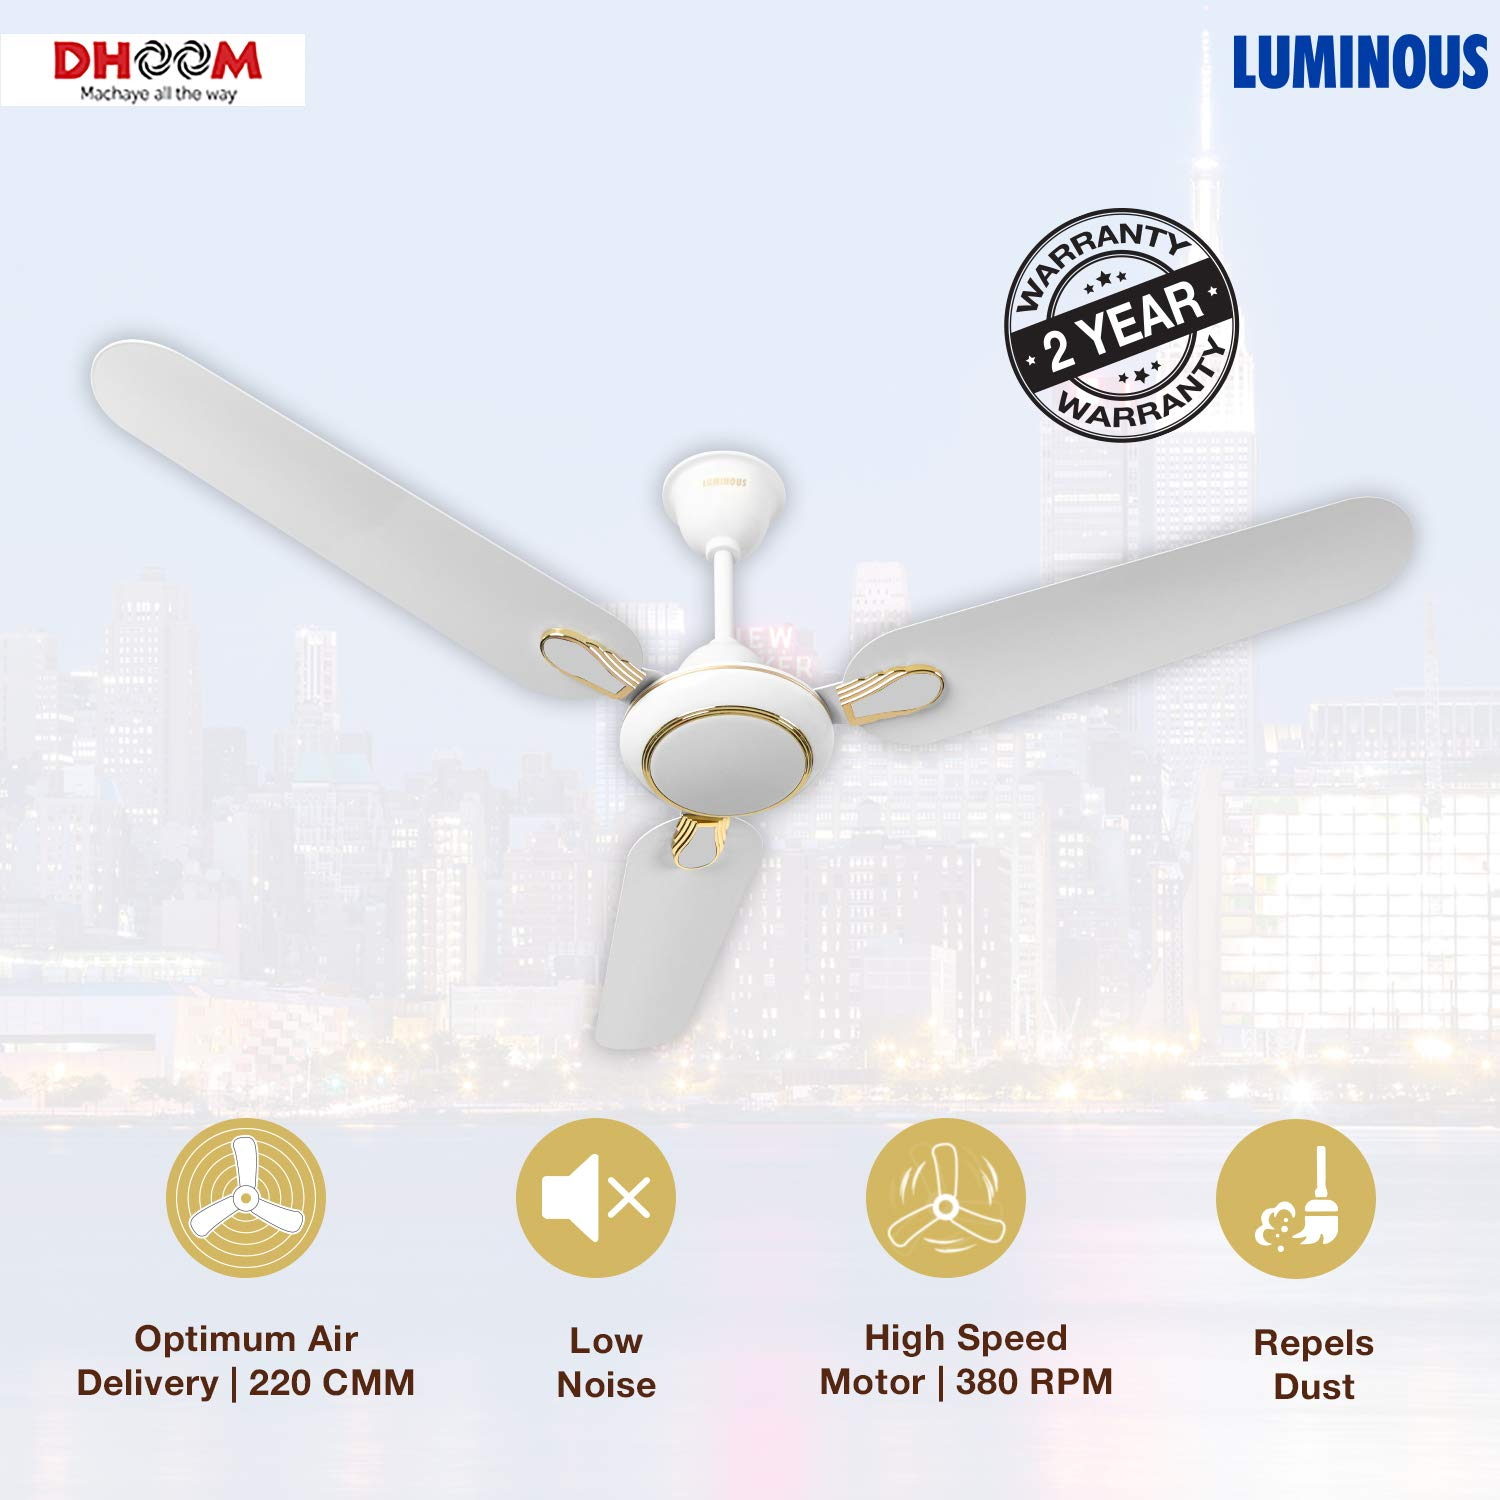 Luminous Dhoom 1200mm 70-Watt High Speed Ceiling Fan (White)